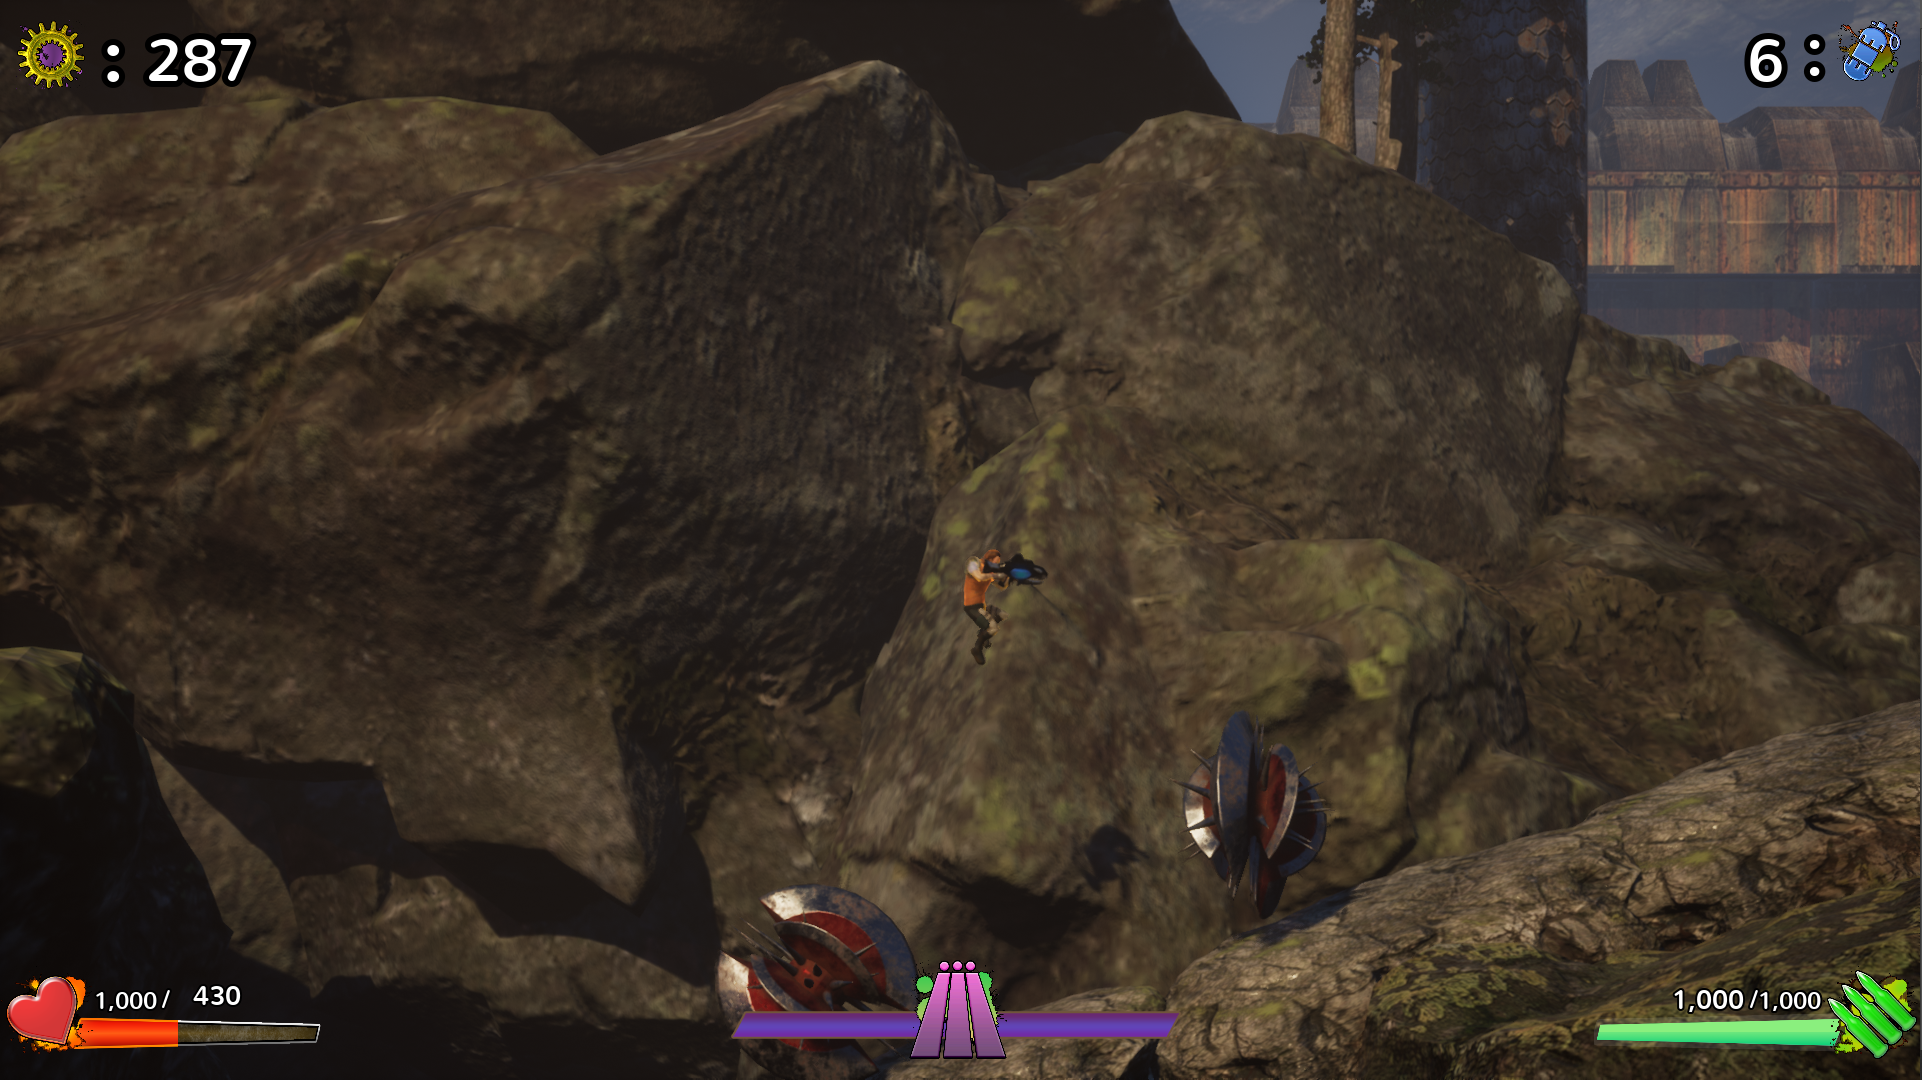 s02jump.png